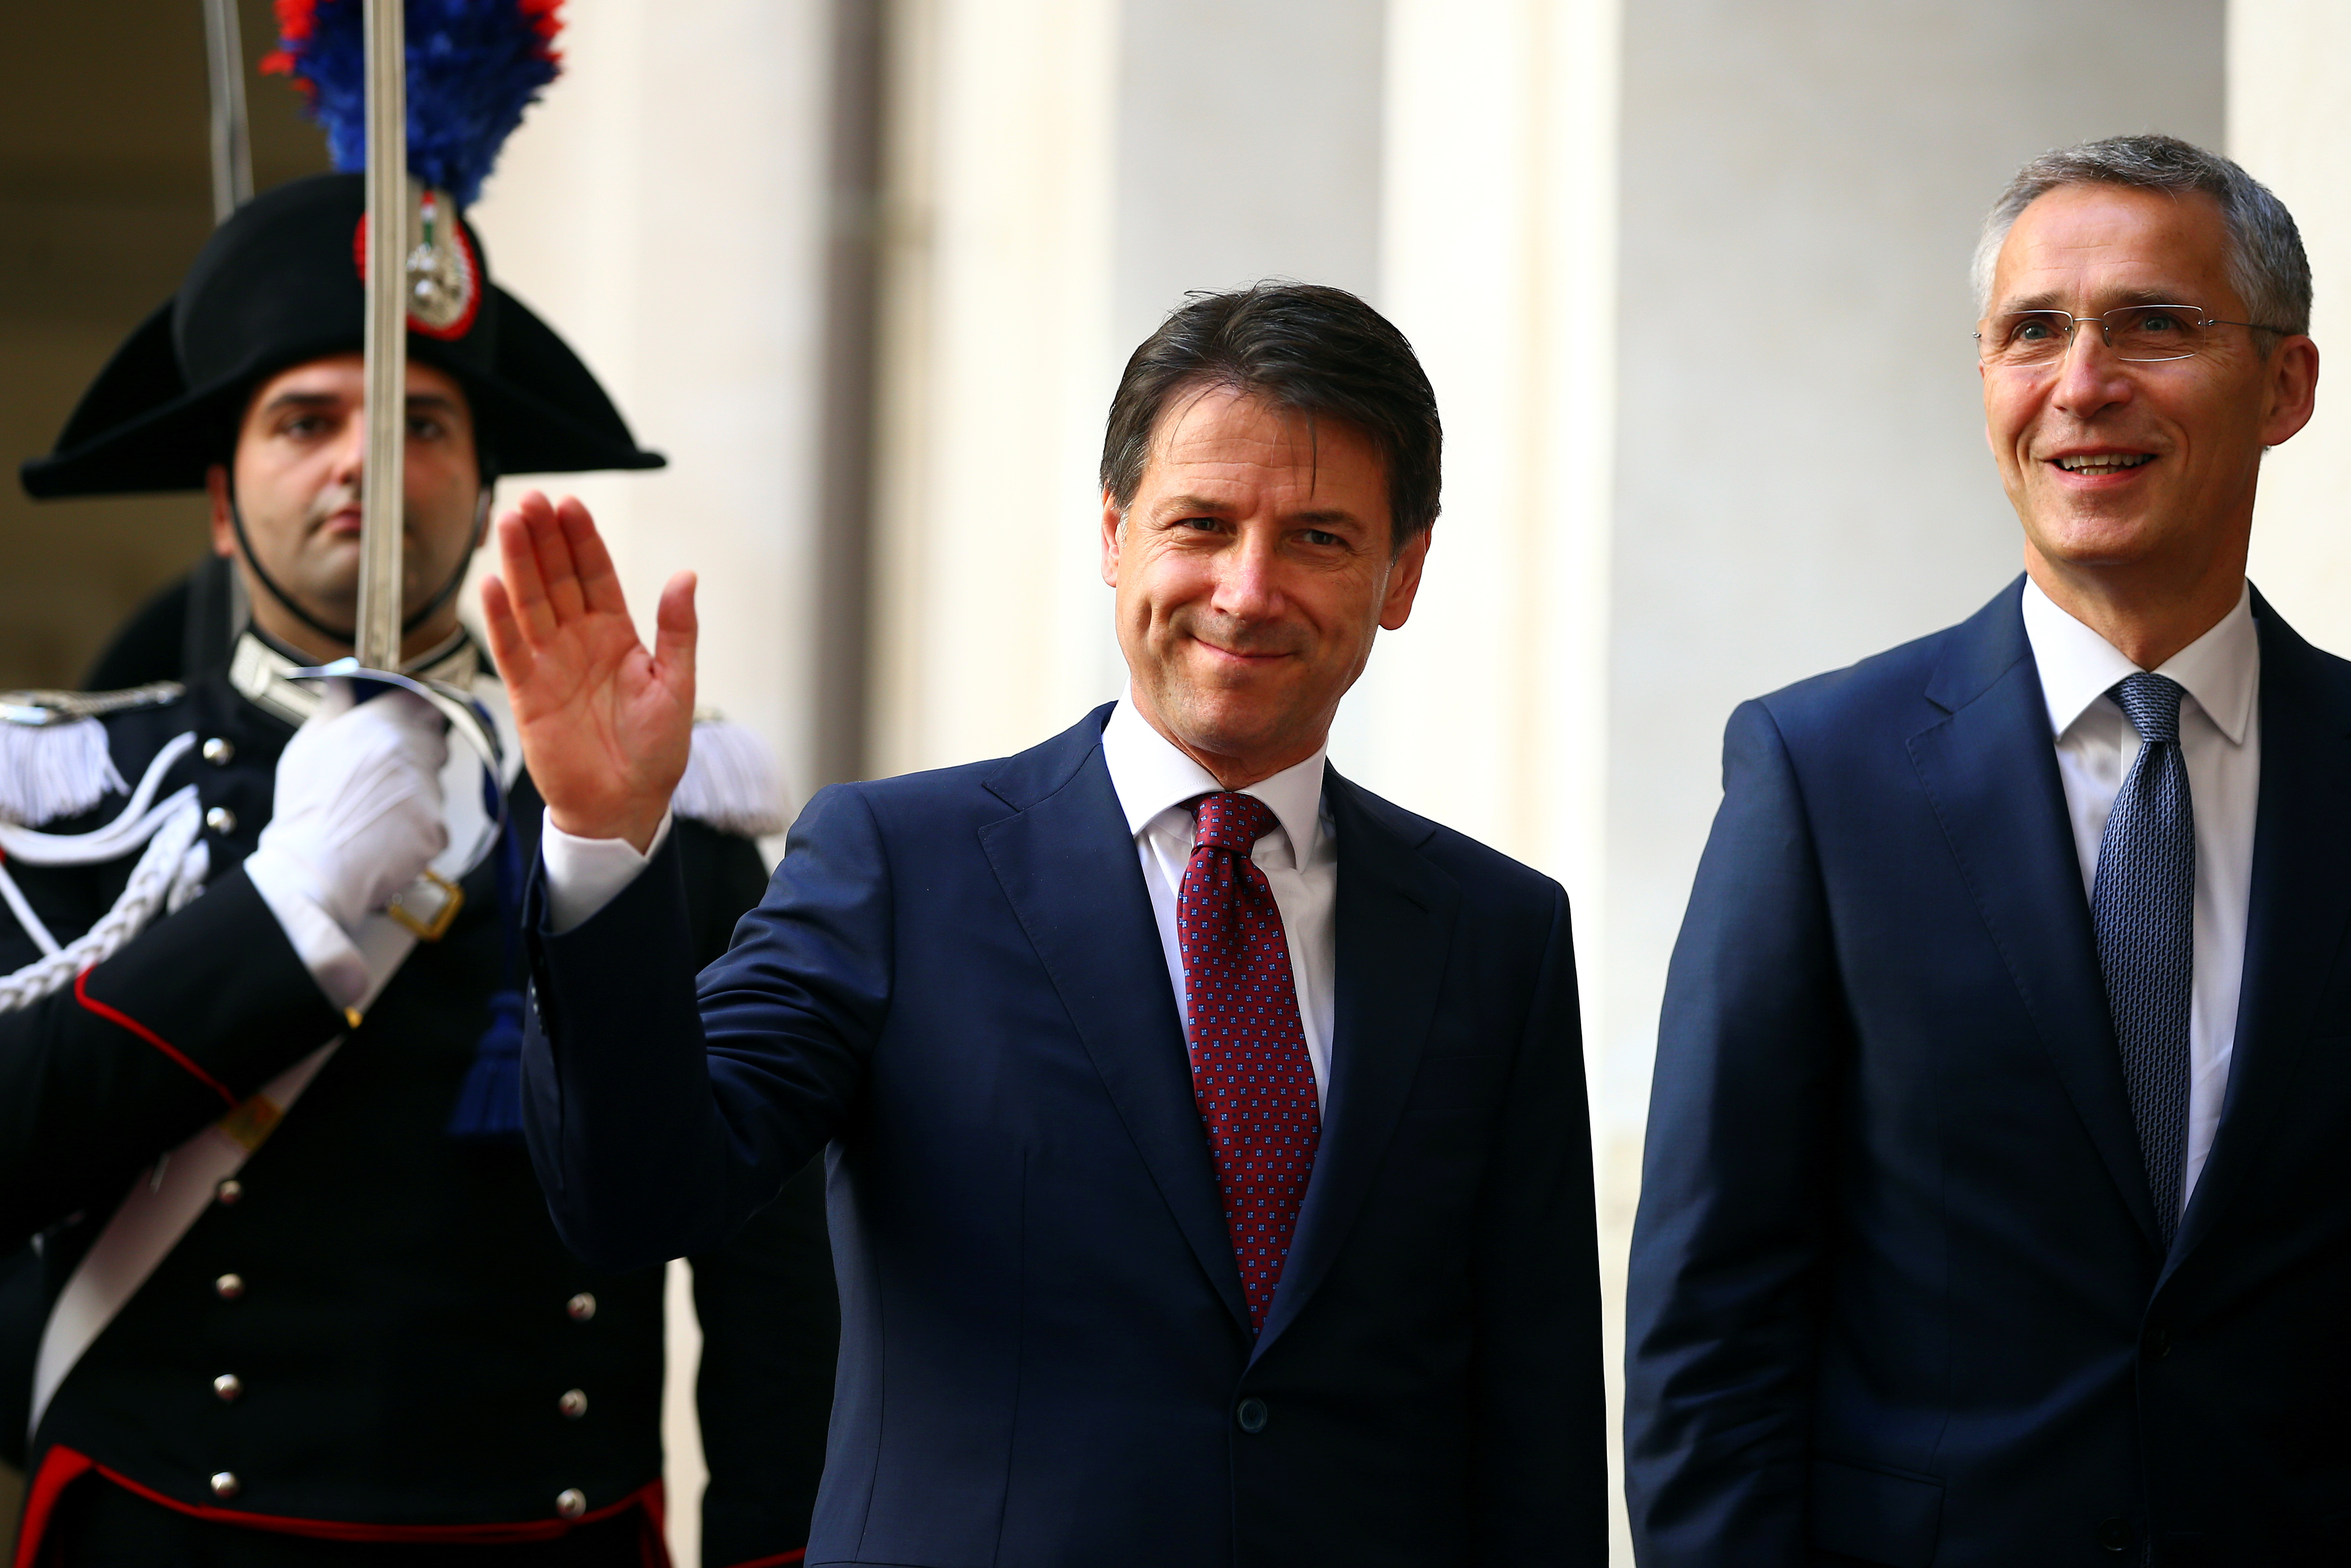 Italy's Prime Minister Giuseppe Conte waves as he arrives with NATO Secretary-General Jens Stoltenberg at Chigi palace in Rome, Italy, June 11, 2018.  REUTERS/Tony Gentile - RC1AFEEA6610